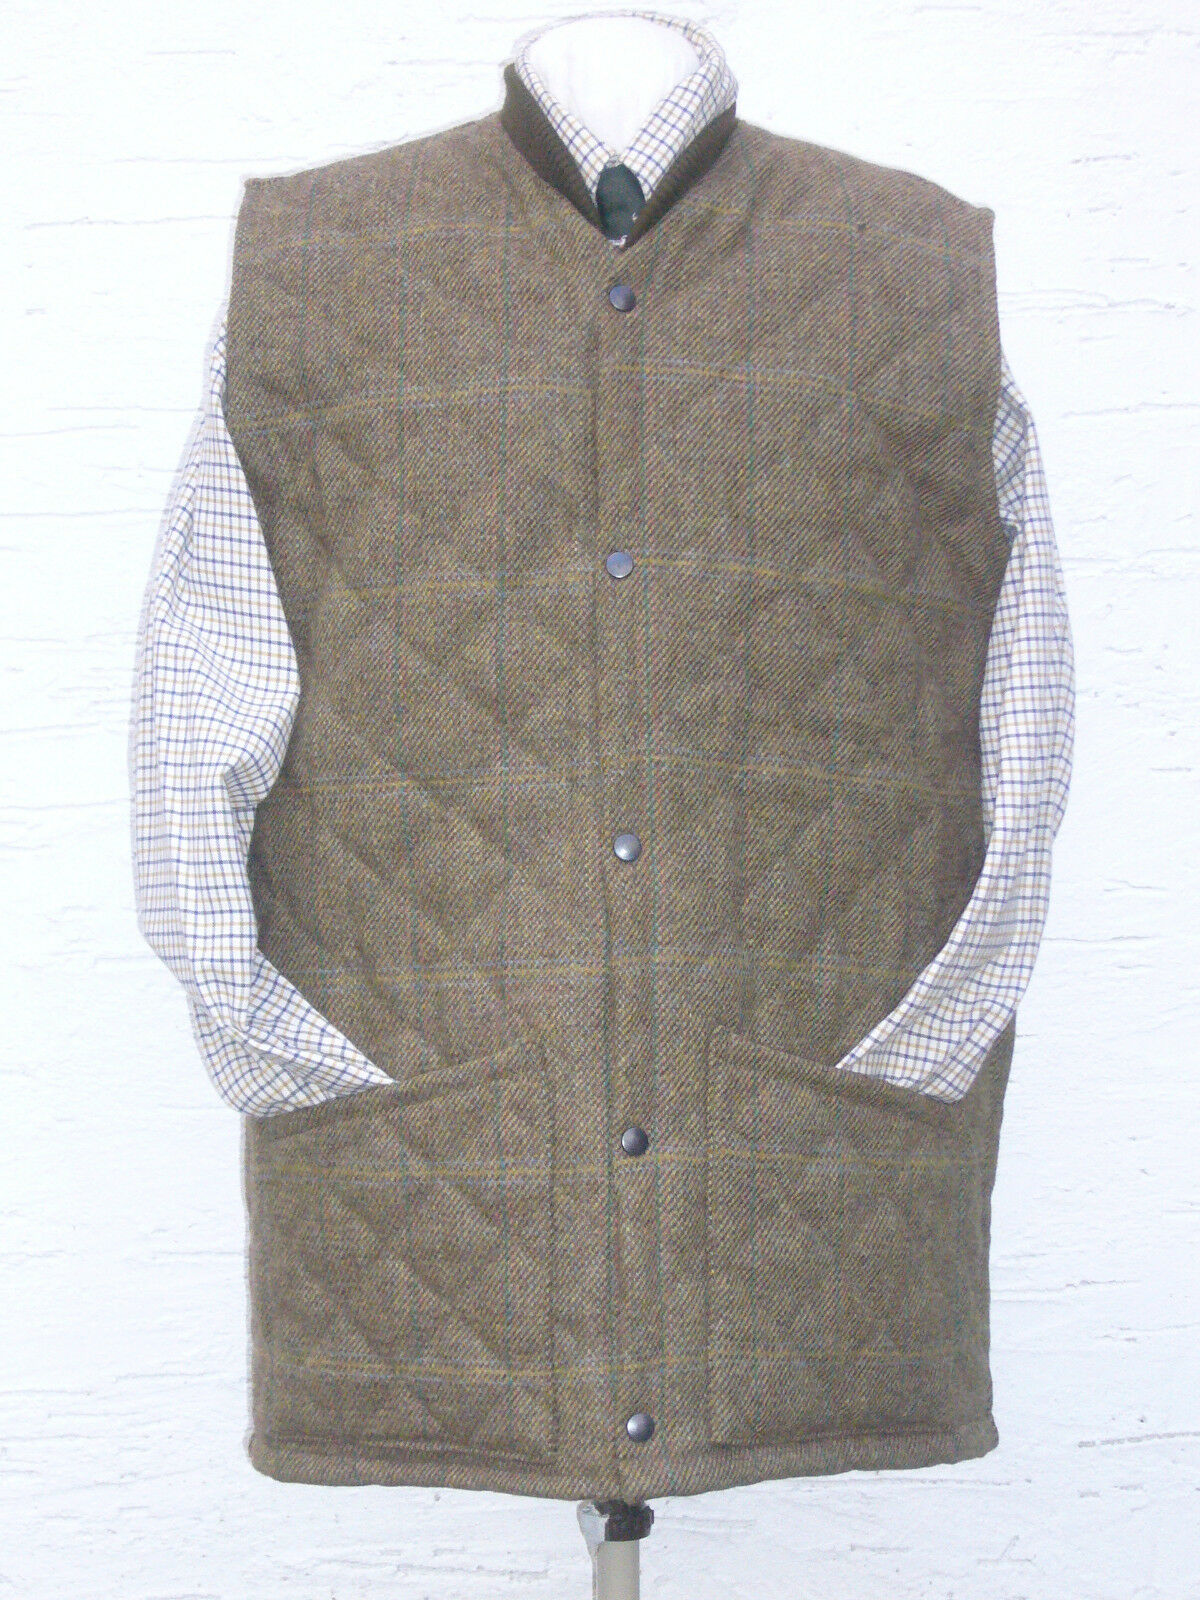 QUILTED TWEED  VEST WOOL  POPPED  FRONT SHOOTING HUNTING COUNTRYWEAR SIZE MEDIUM